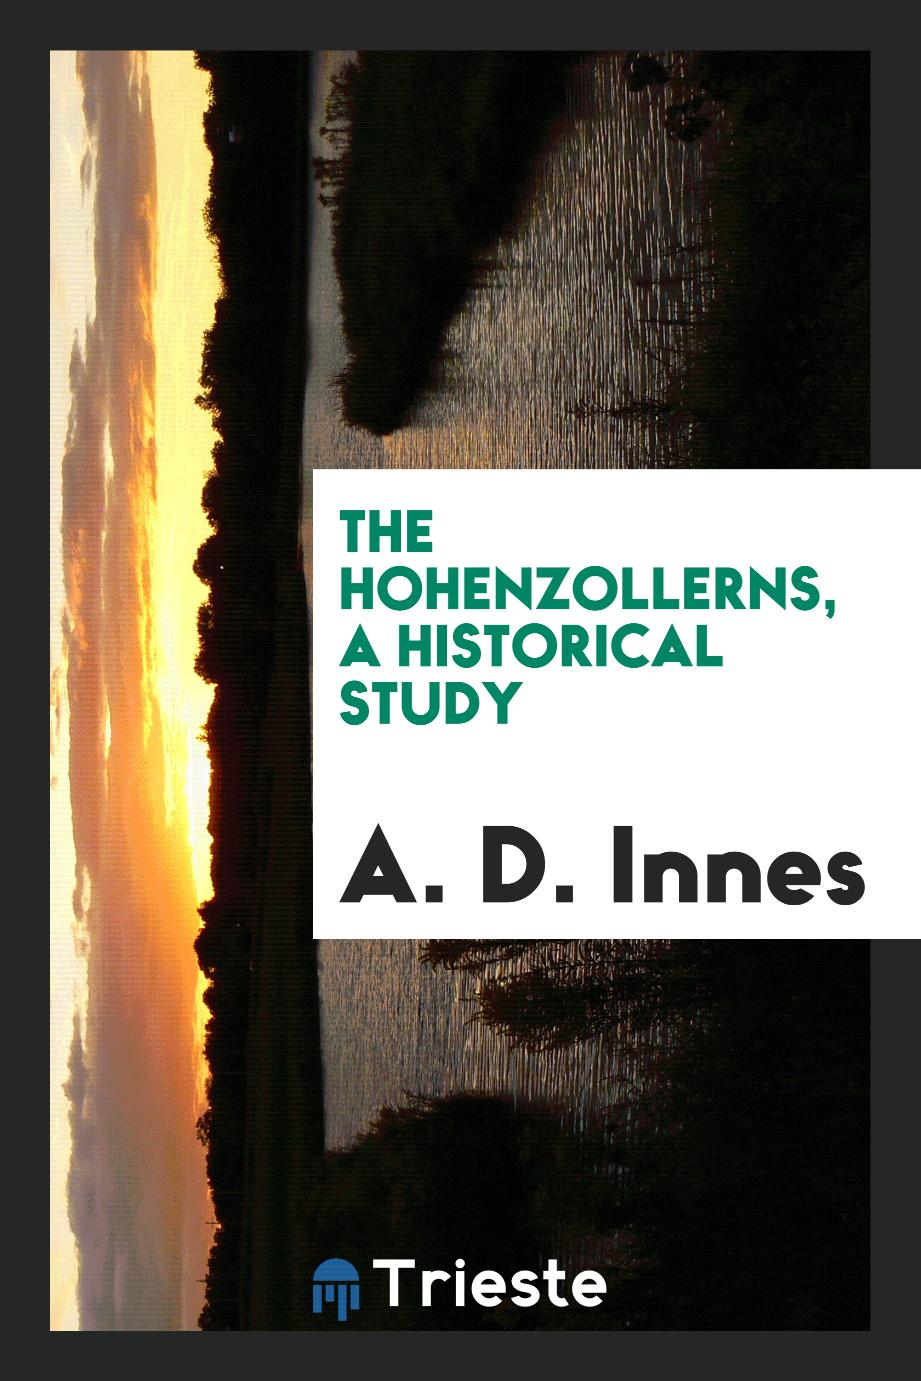 The Hohenzollerns, a historical study